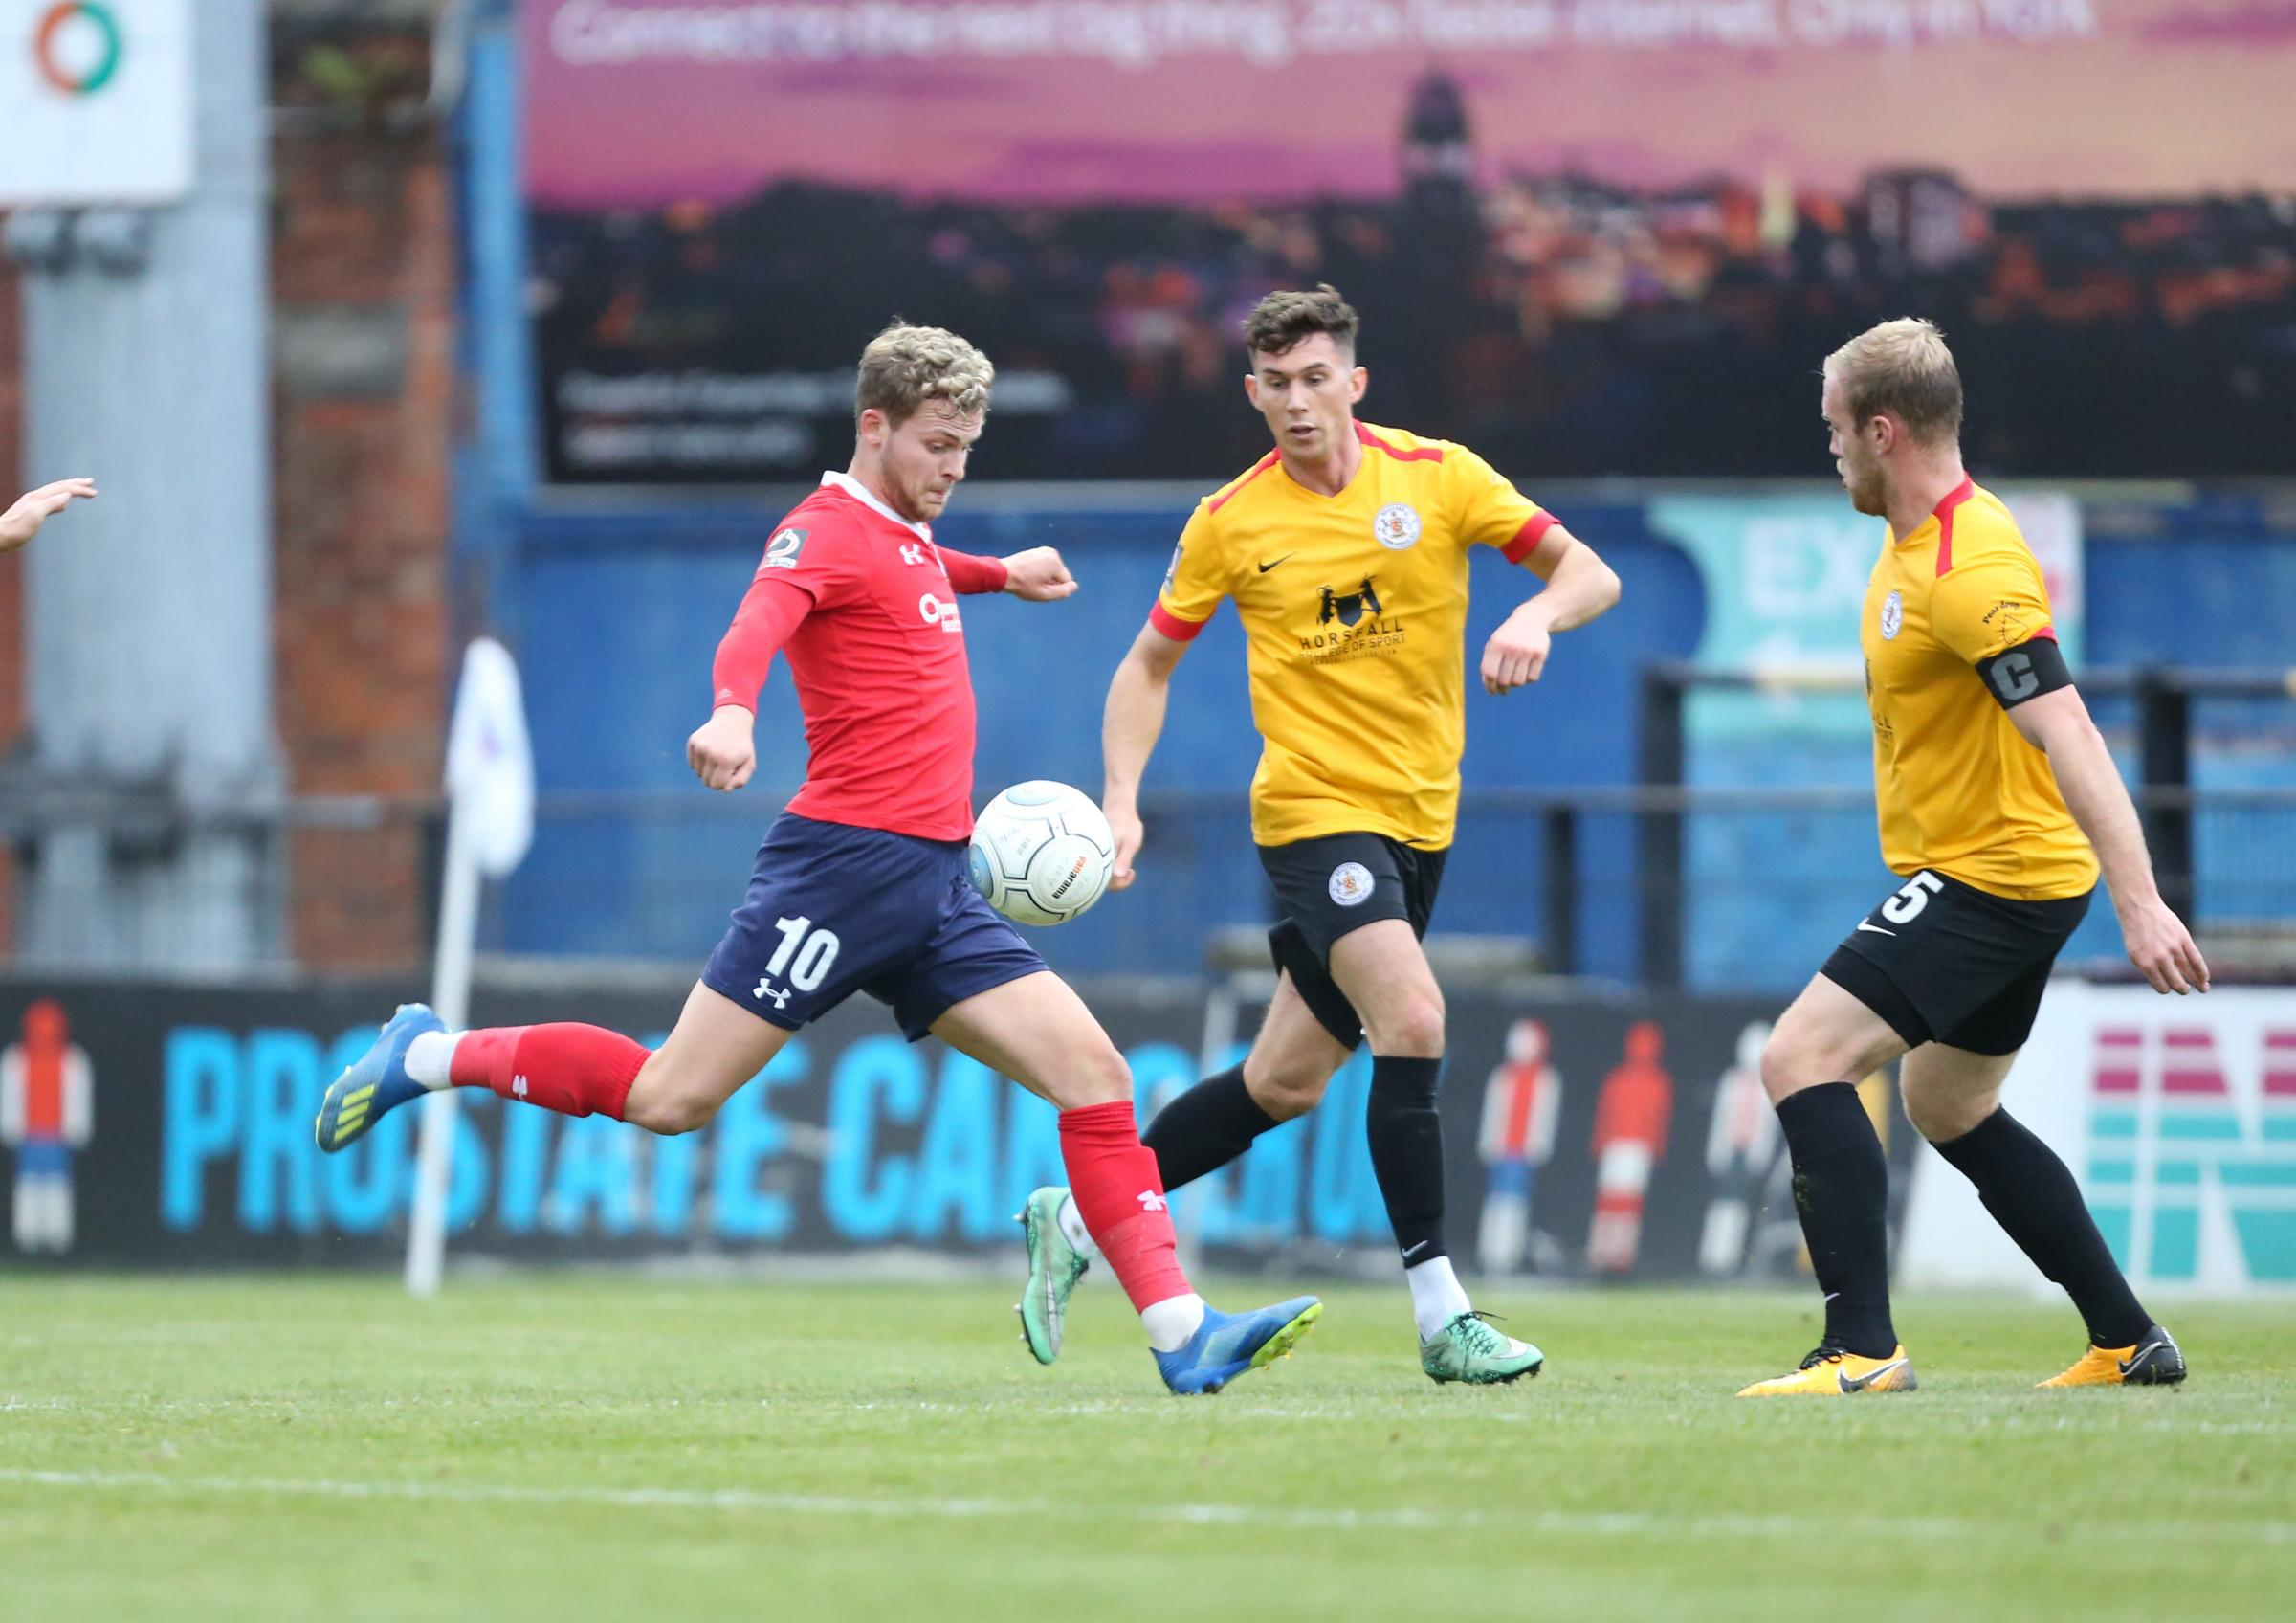 York City's Jake Wright fires wide..York City v Bradford (Park Avenue). Vanararma National League  North clash held at Bootham Crescent on the 03/11/2018.Pic by Gordon Clayton.Football  Images are covered by DataCo  & The National LeagueLicence ag